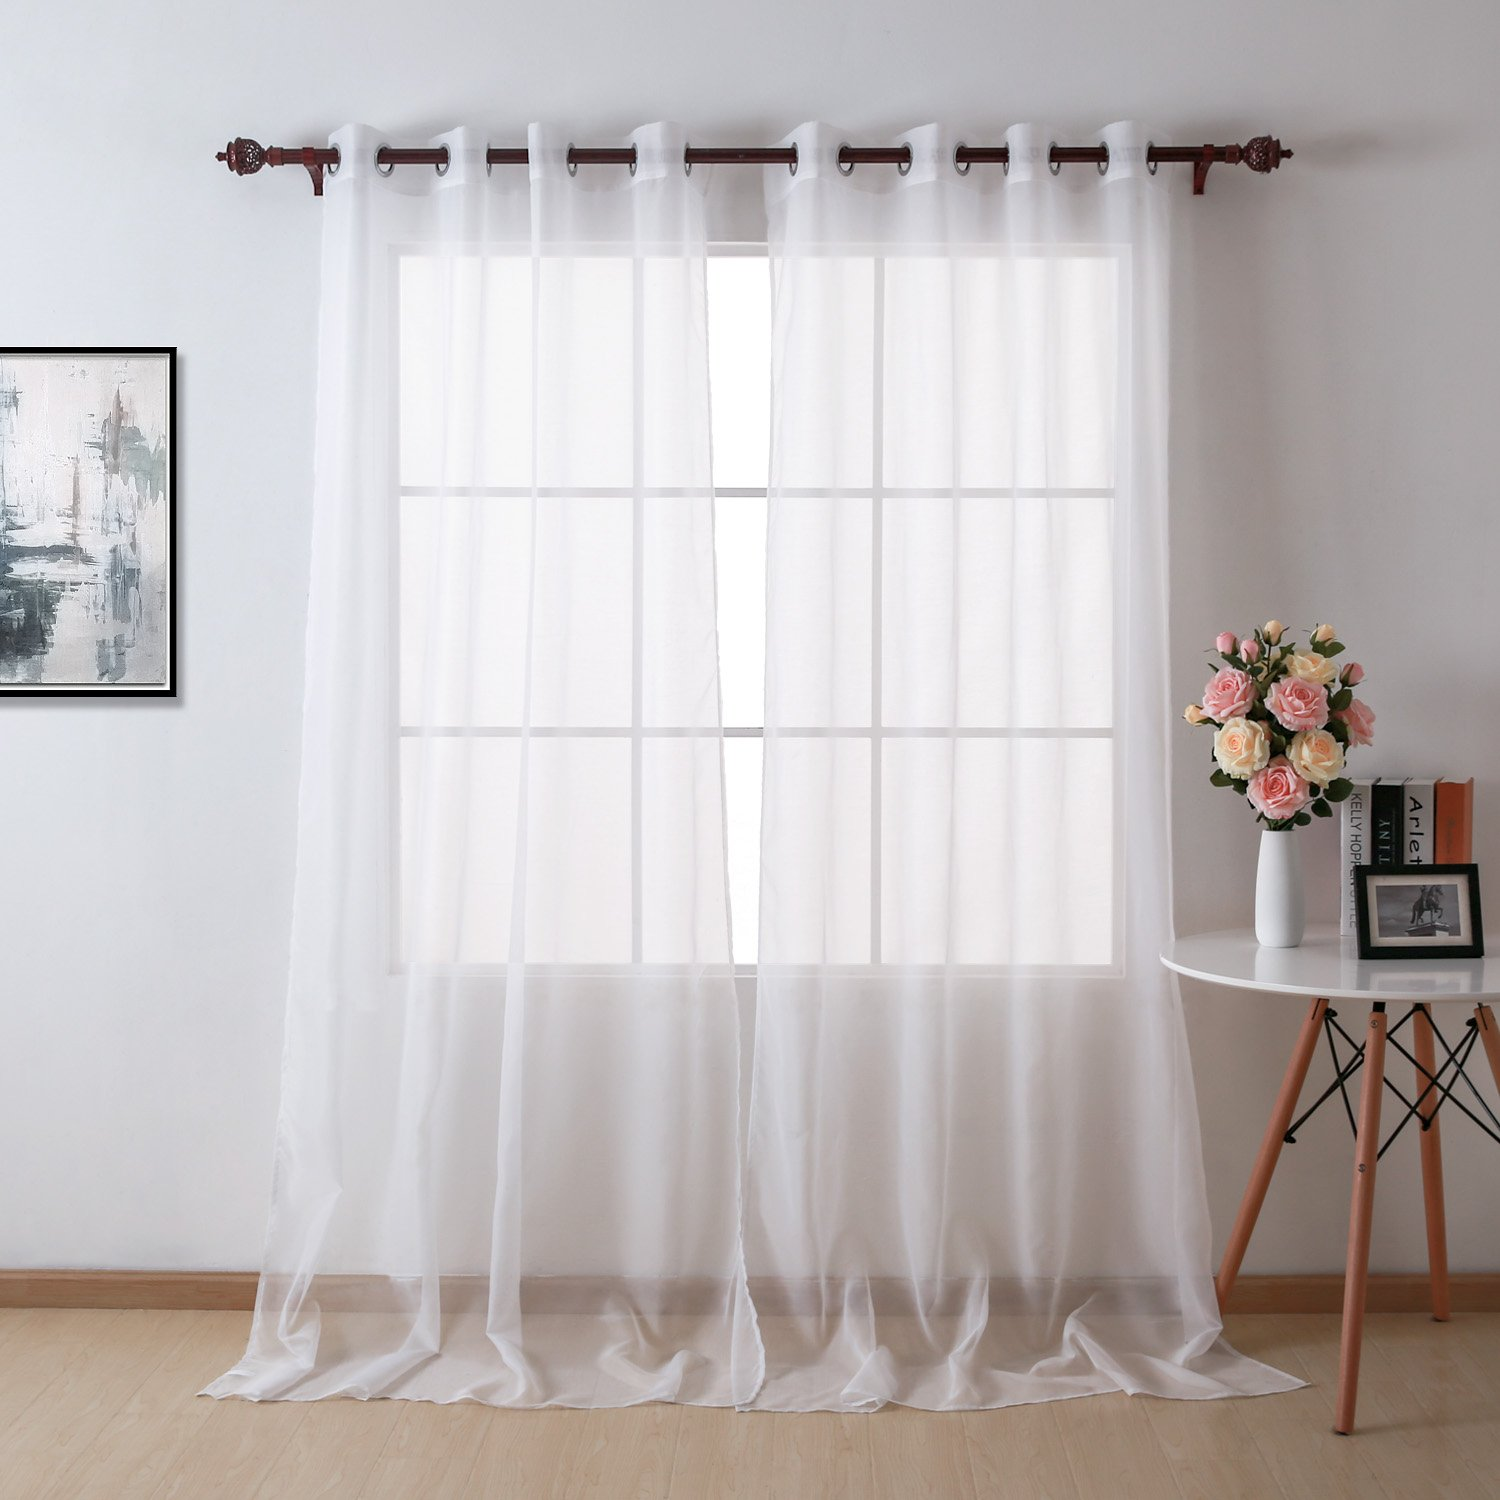 Deconovo Sheer Voile Curtains Eyelet Semi Transparent Super Soft Sheer Curtains Small for Bedroom 55 x 71 Inch White 1 Panel